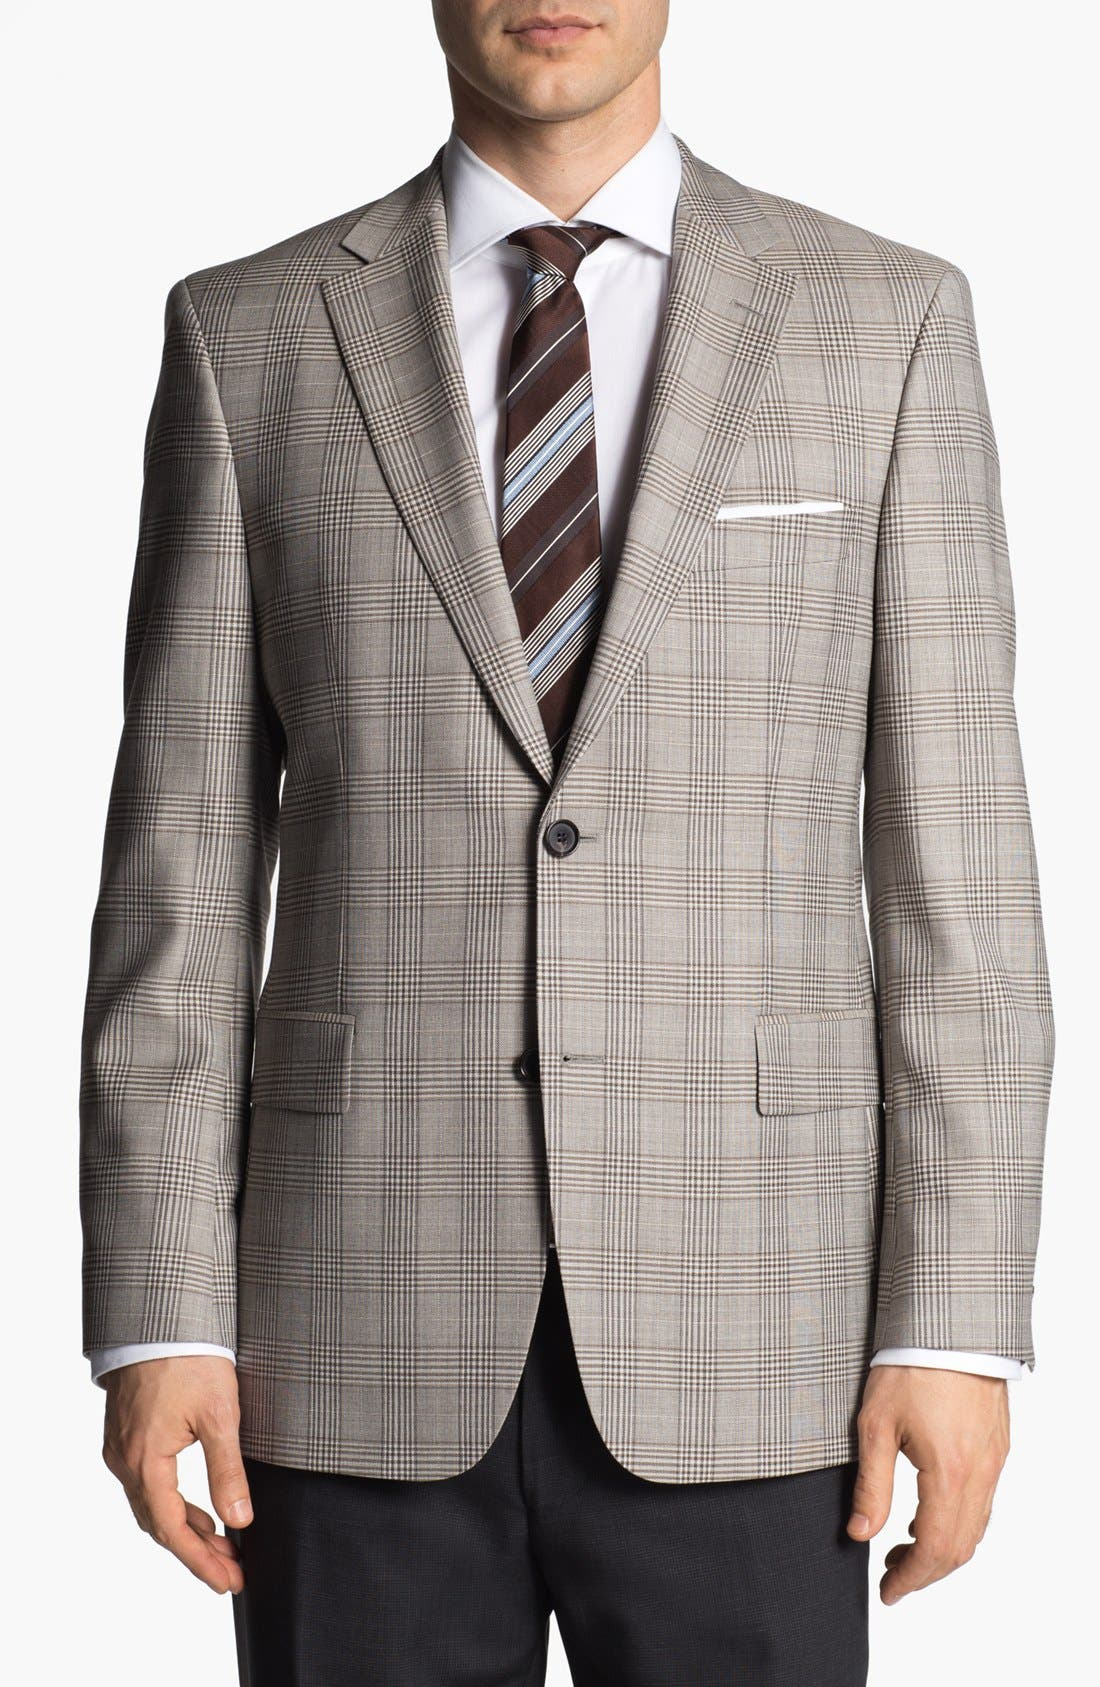 Alternate Image 1 Selected - BOSS HUGO BOSS 'Pasini' Glen Plaid Sportcoat